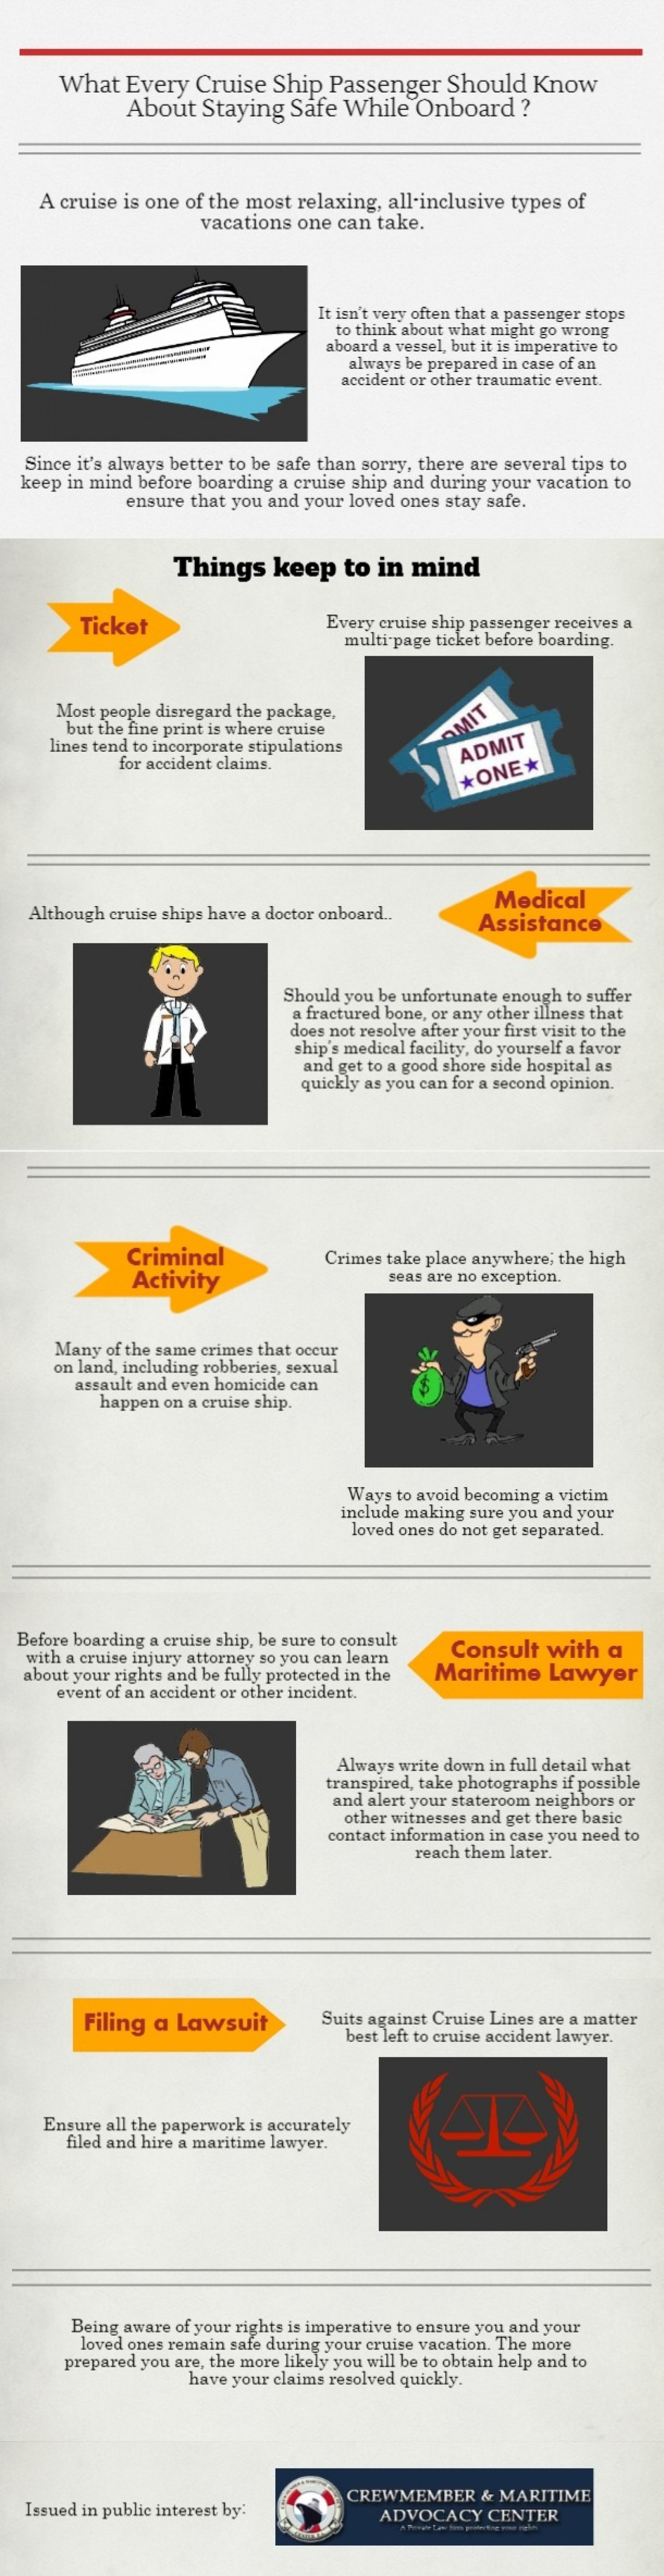 What Every Cruise Ship Passenger Should Know About Staying Safe While Onboard Infographic